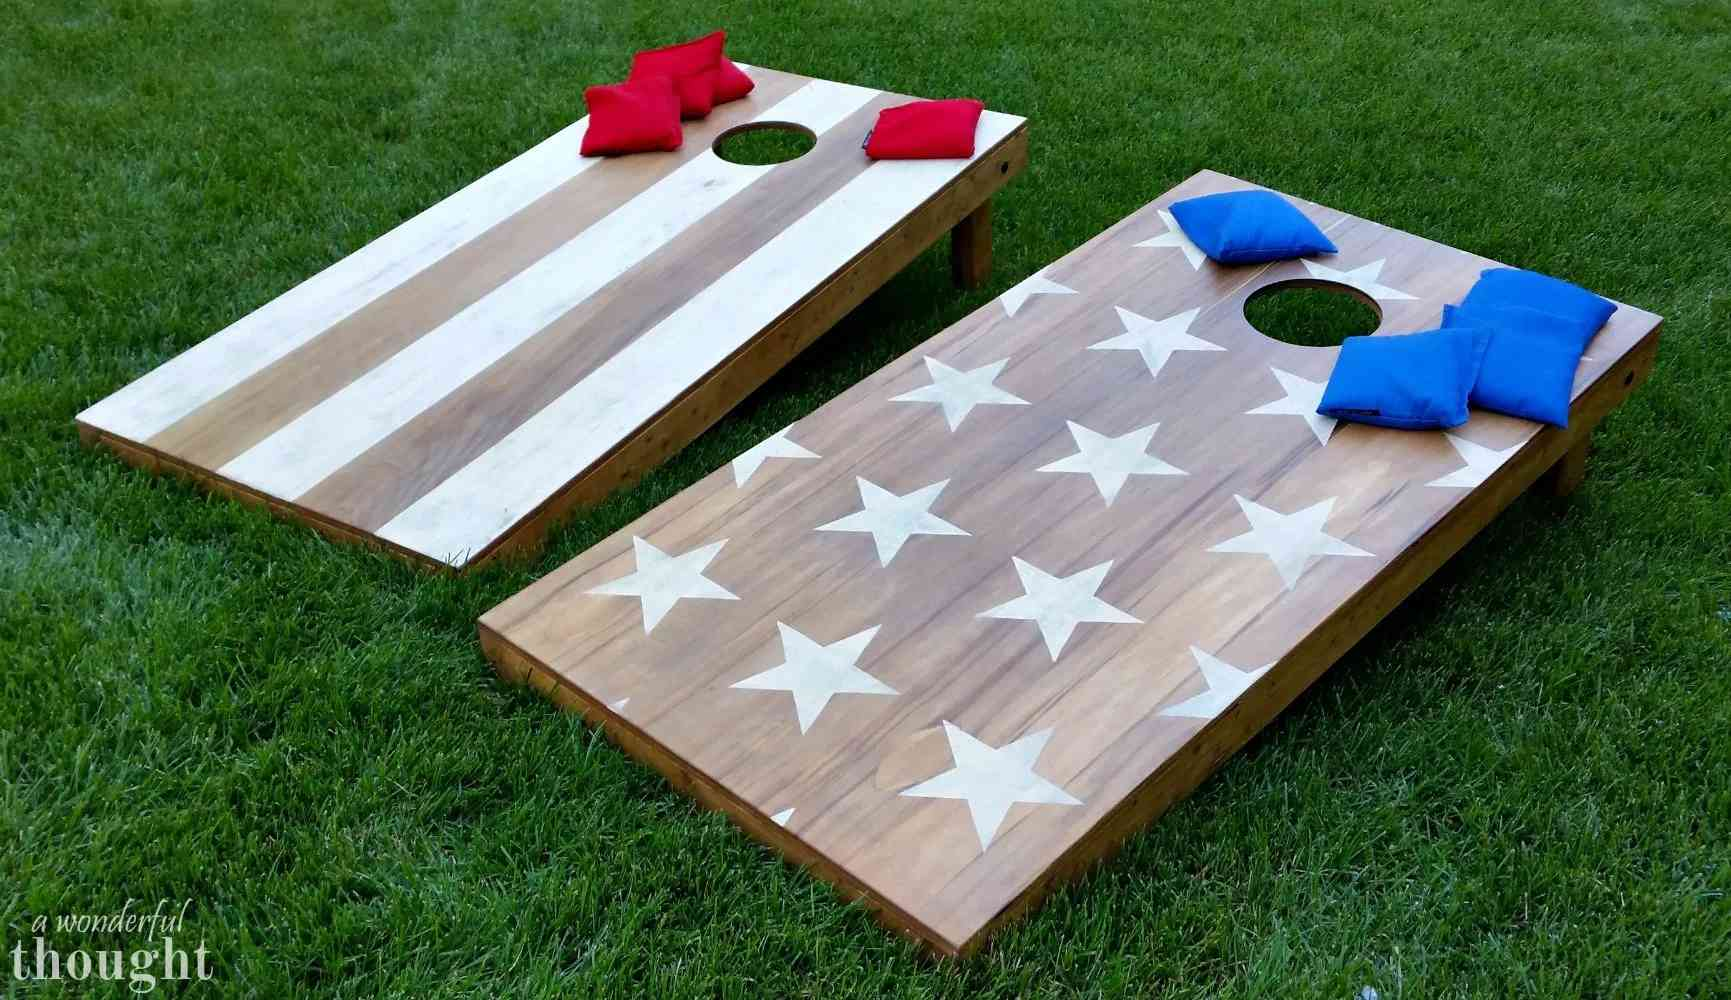 Two cornhole boards with red and blue bean bags